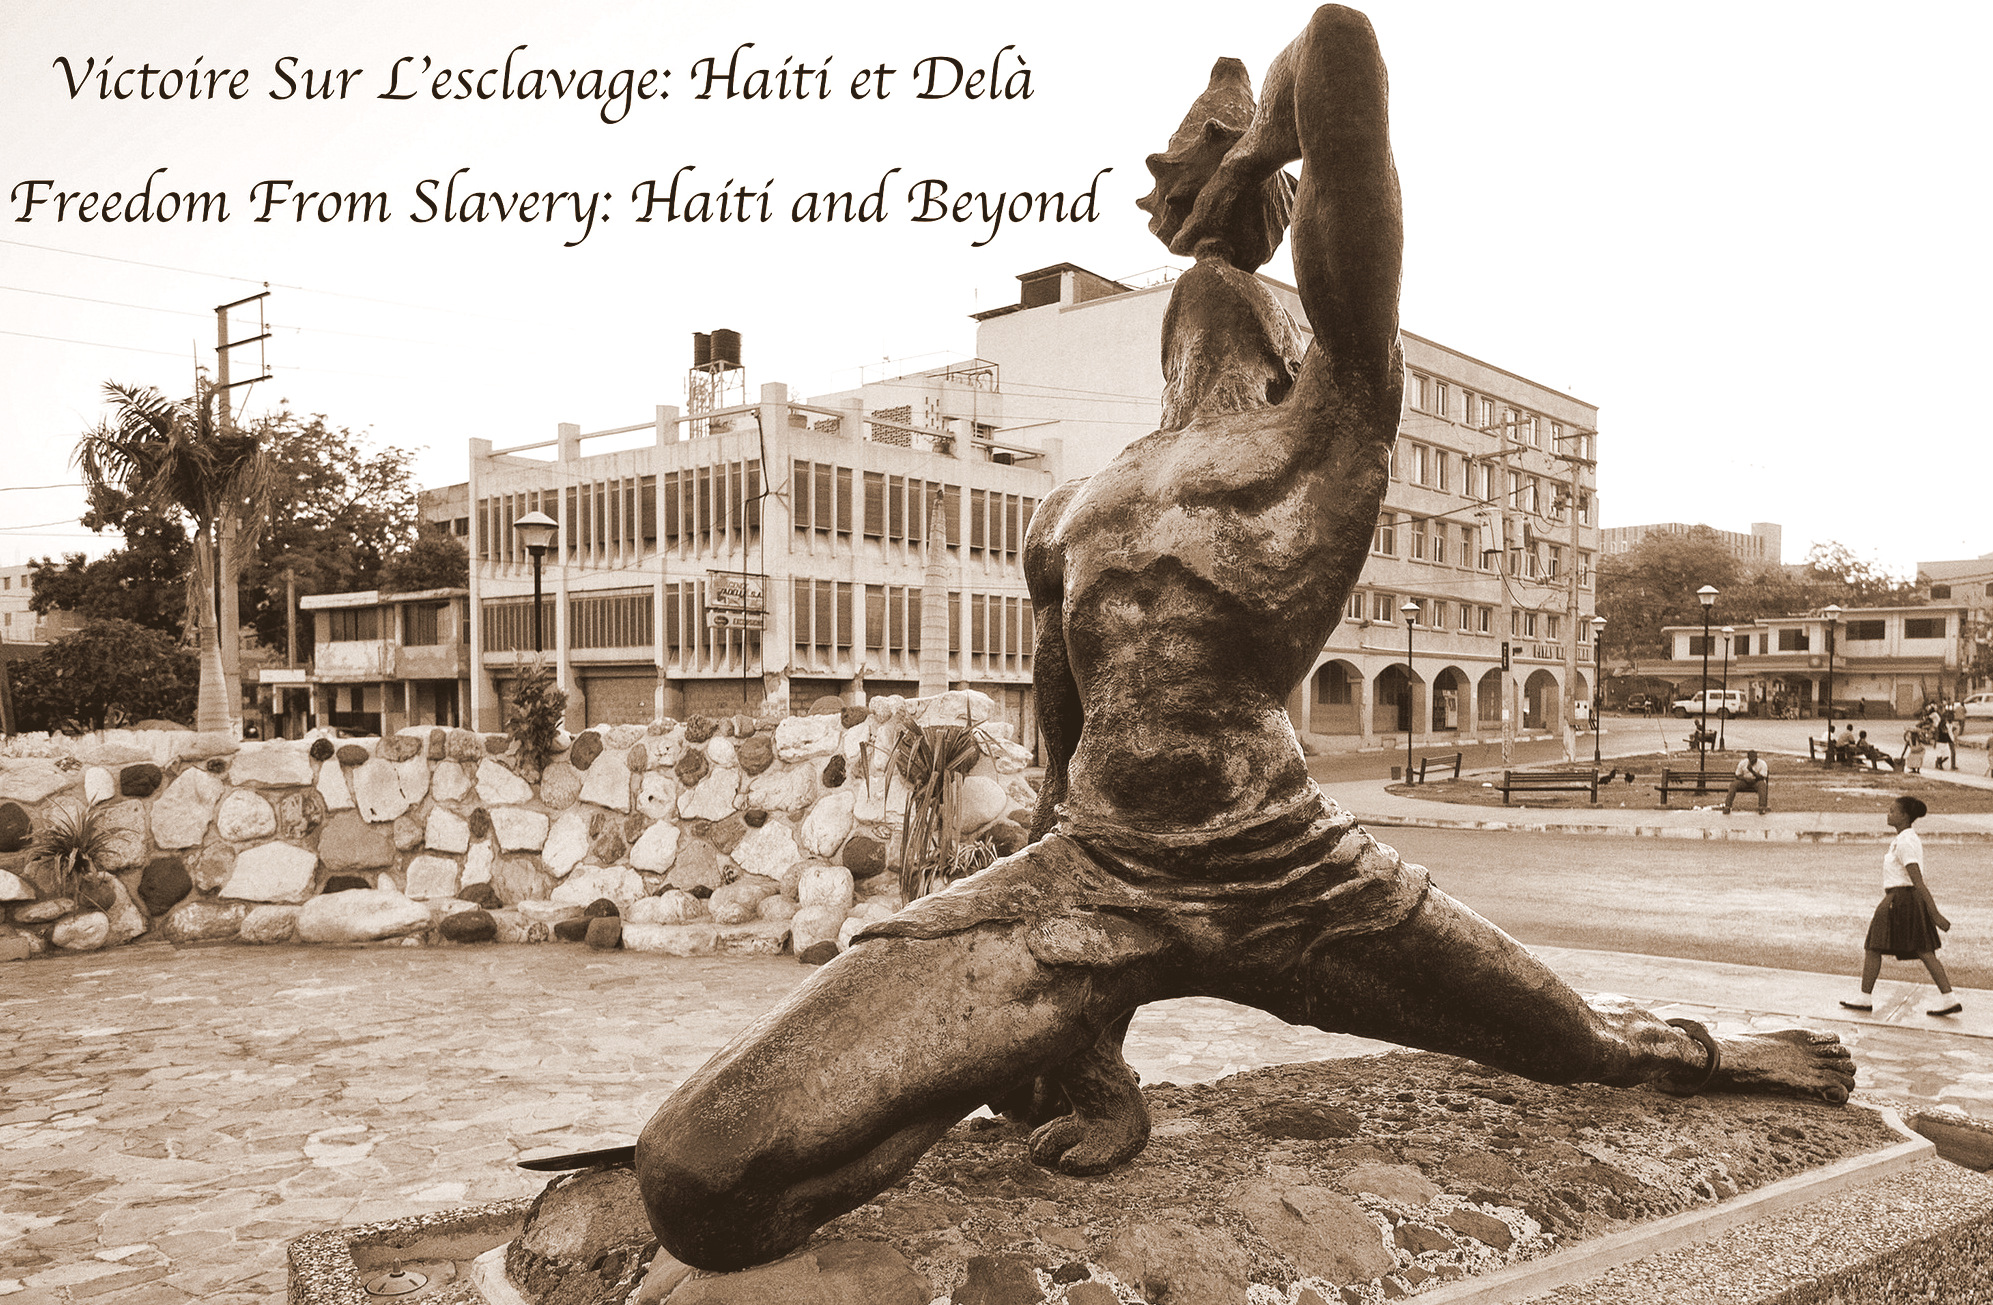 the haitian revolution At the outbreak of the french revolution in 1789, the colony of st domingue, now haiti, furnished two-thirds of france's overseas trade, employed one thousand.